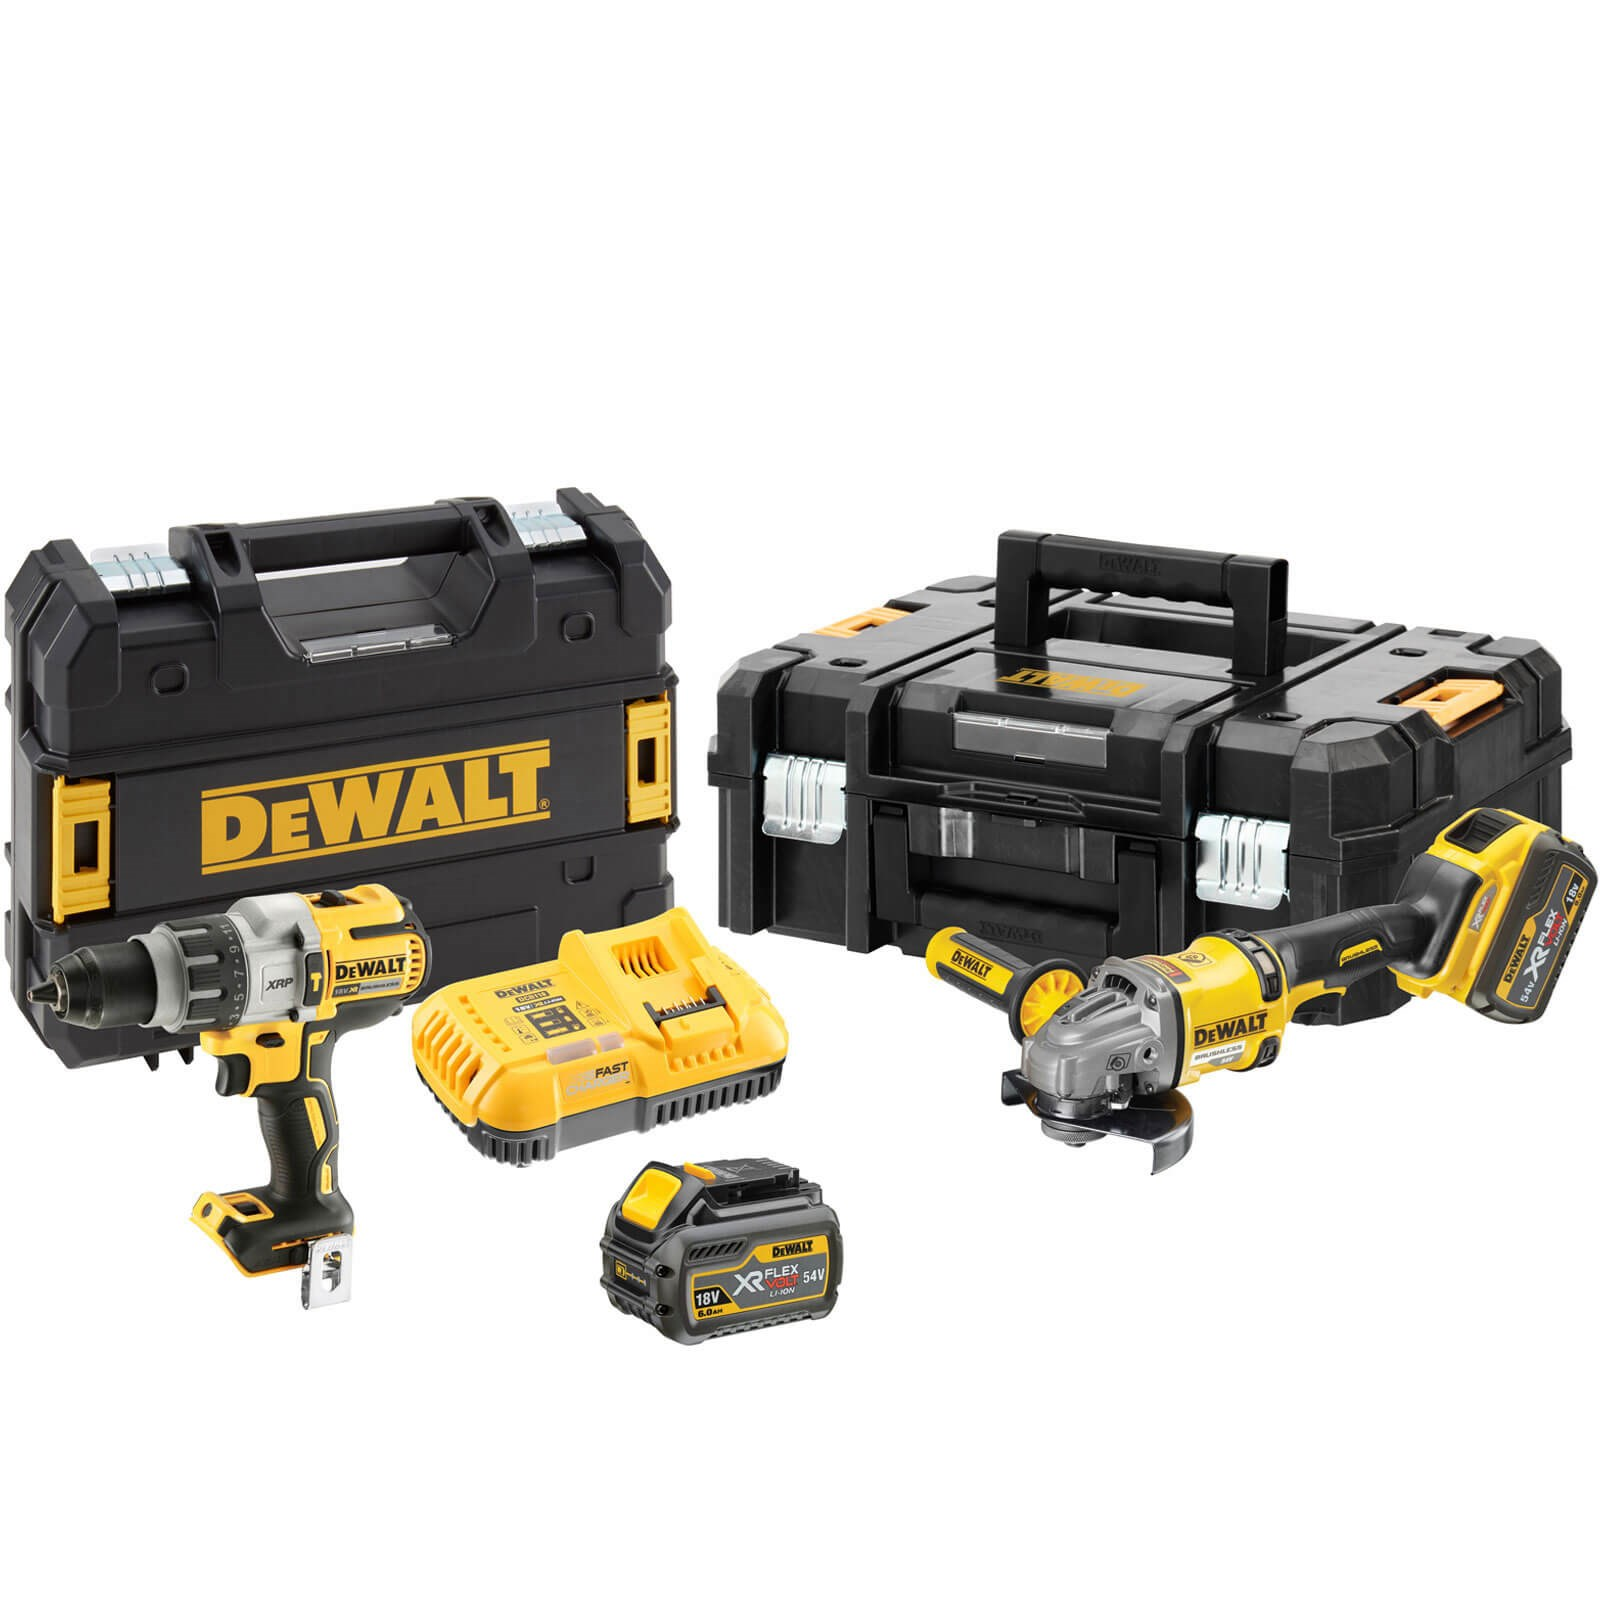 DeWalt DCK2055T2T 54v XR Cordless FLEXVOLT Drill and Angle Grinder Kit